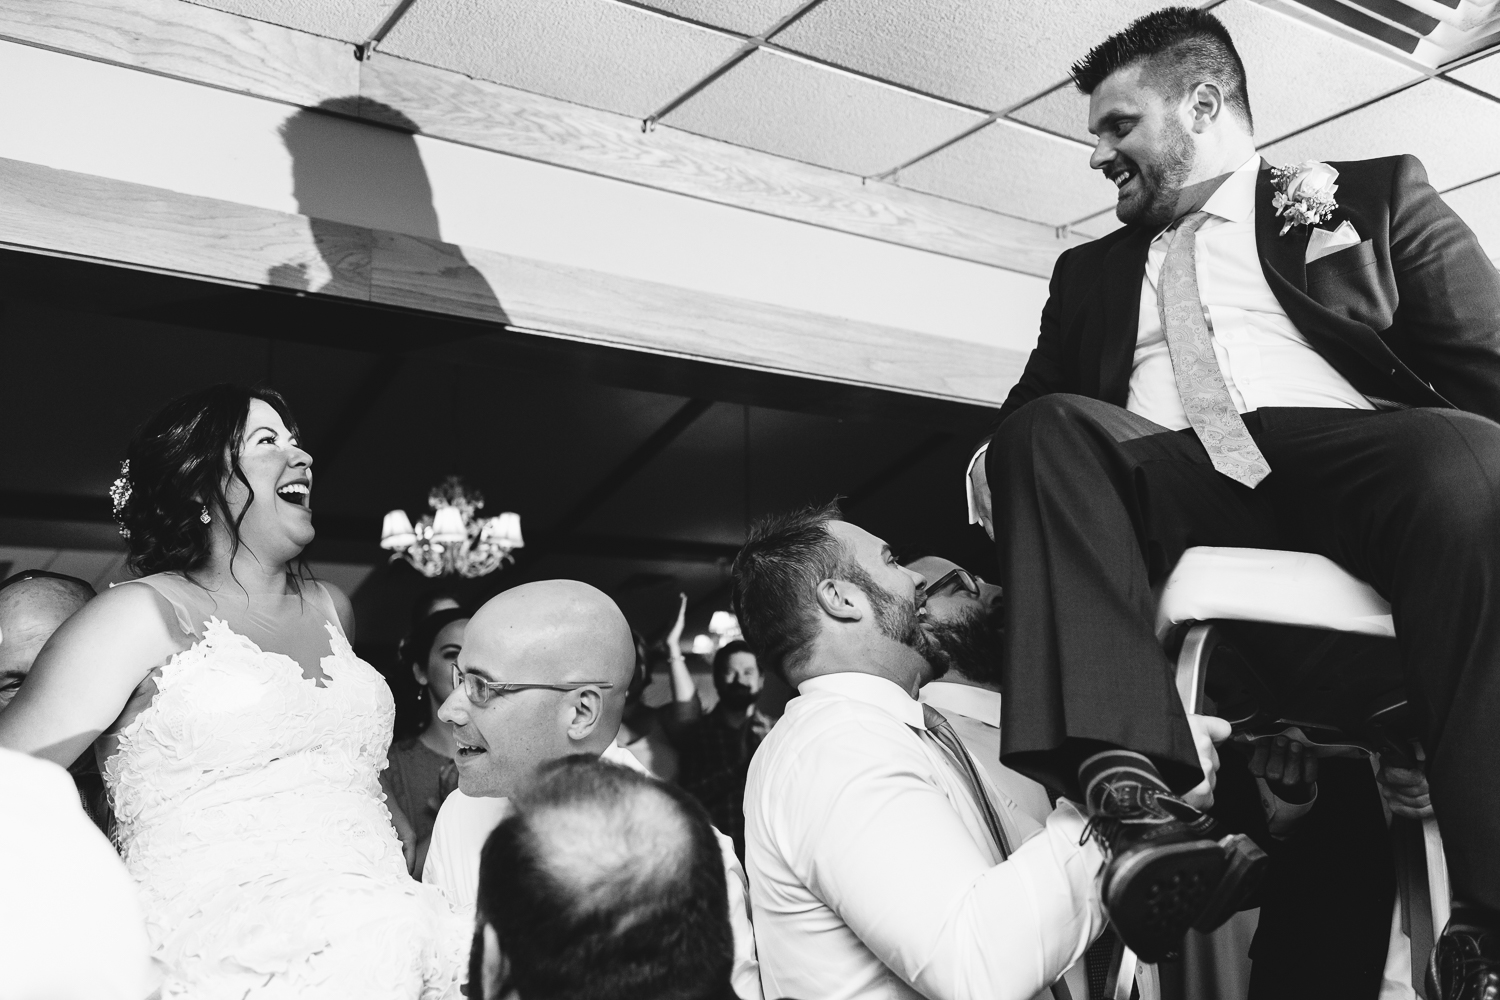 Black and white image of bride and groom getting lifted up on chairs during the Horah.